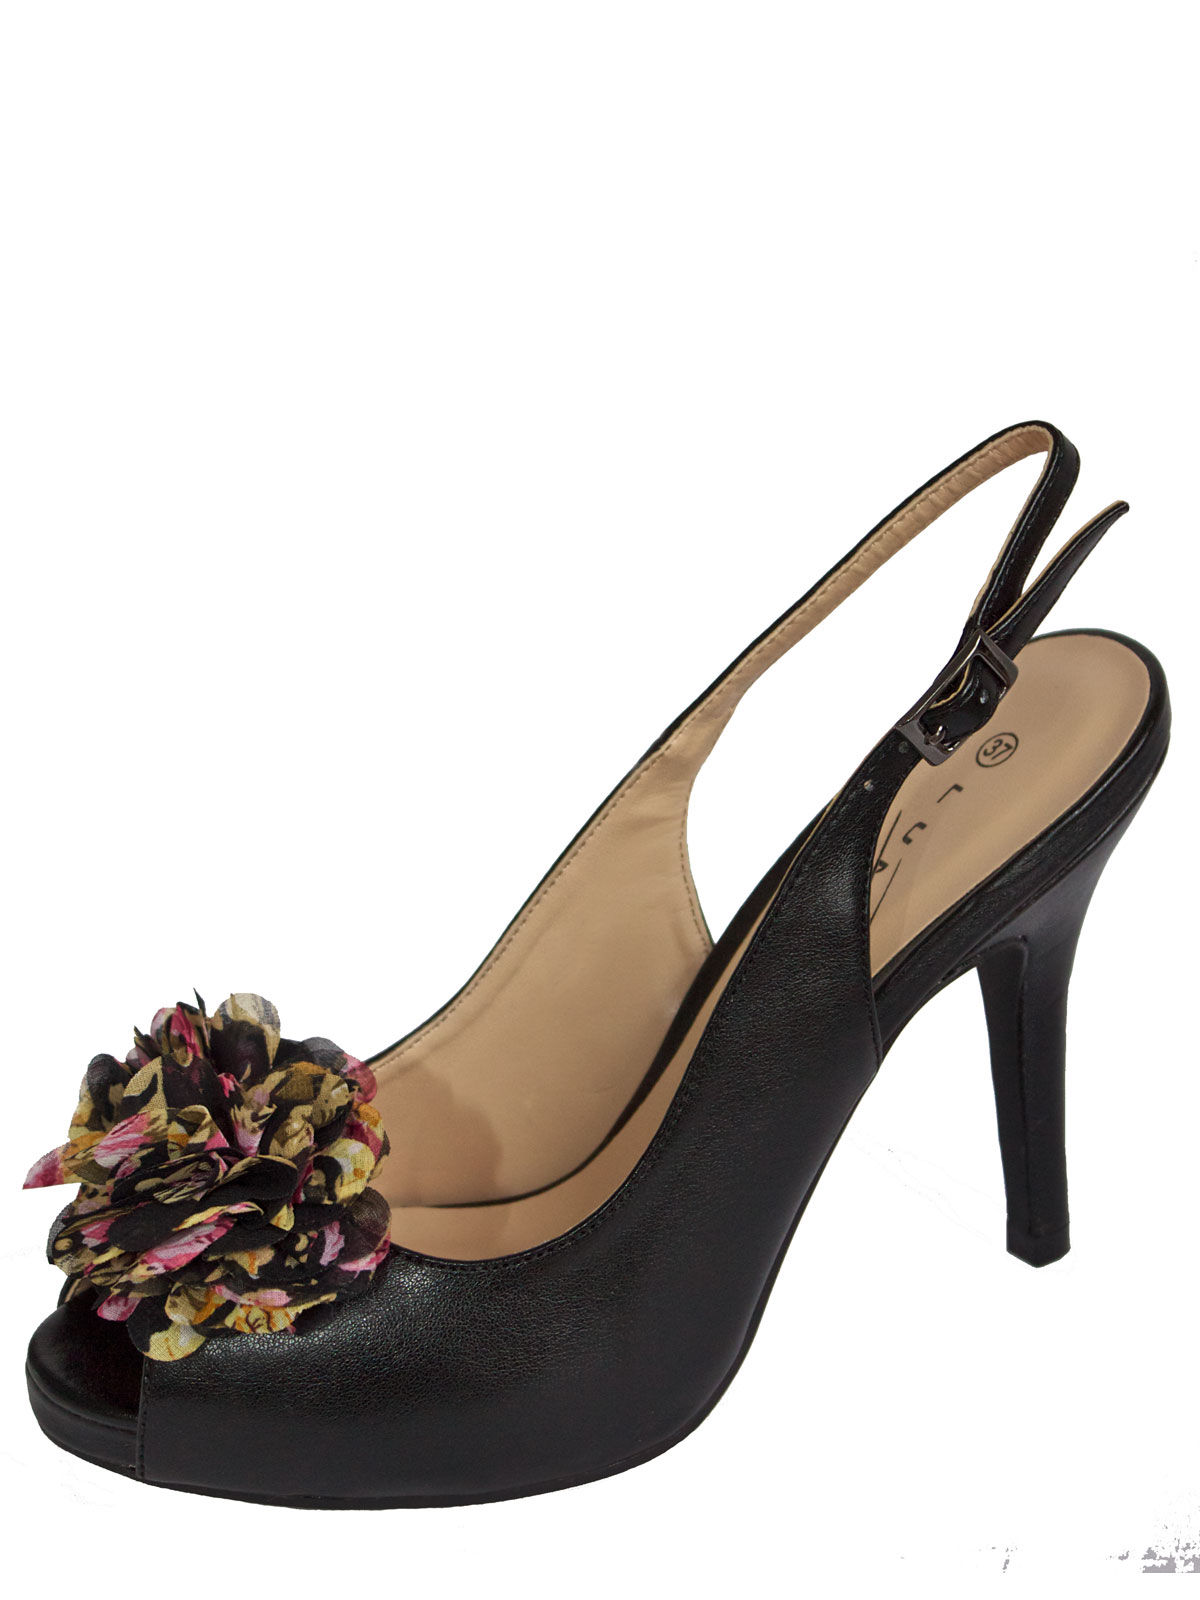 Lunar Black Slingback High Heels, Peep Toe Multicoloured Rosette